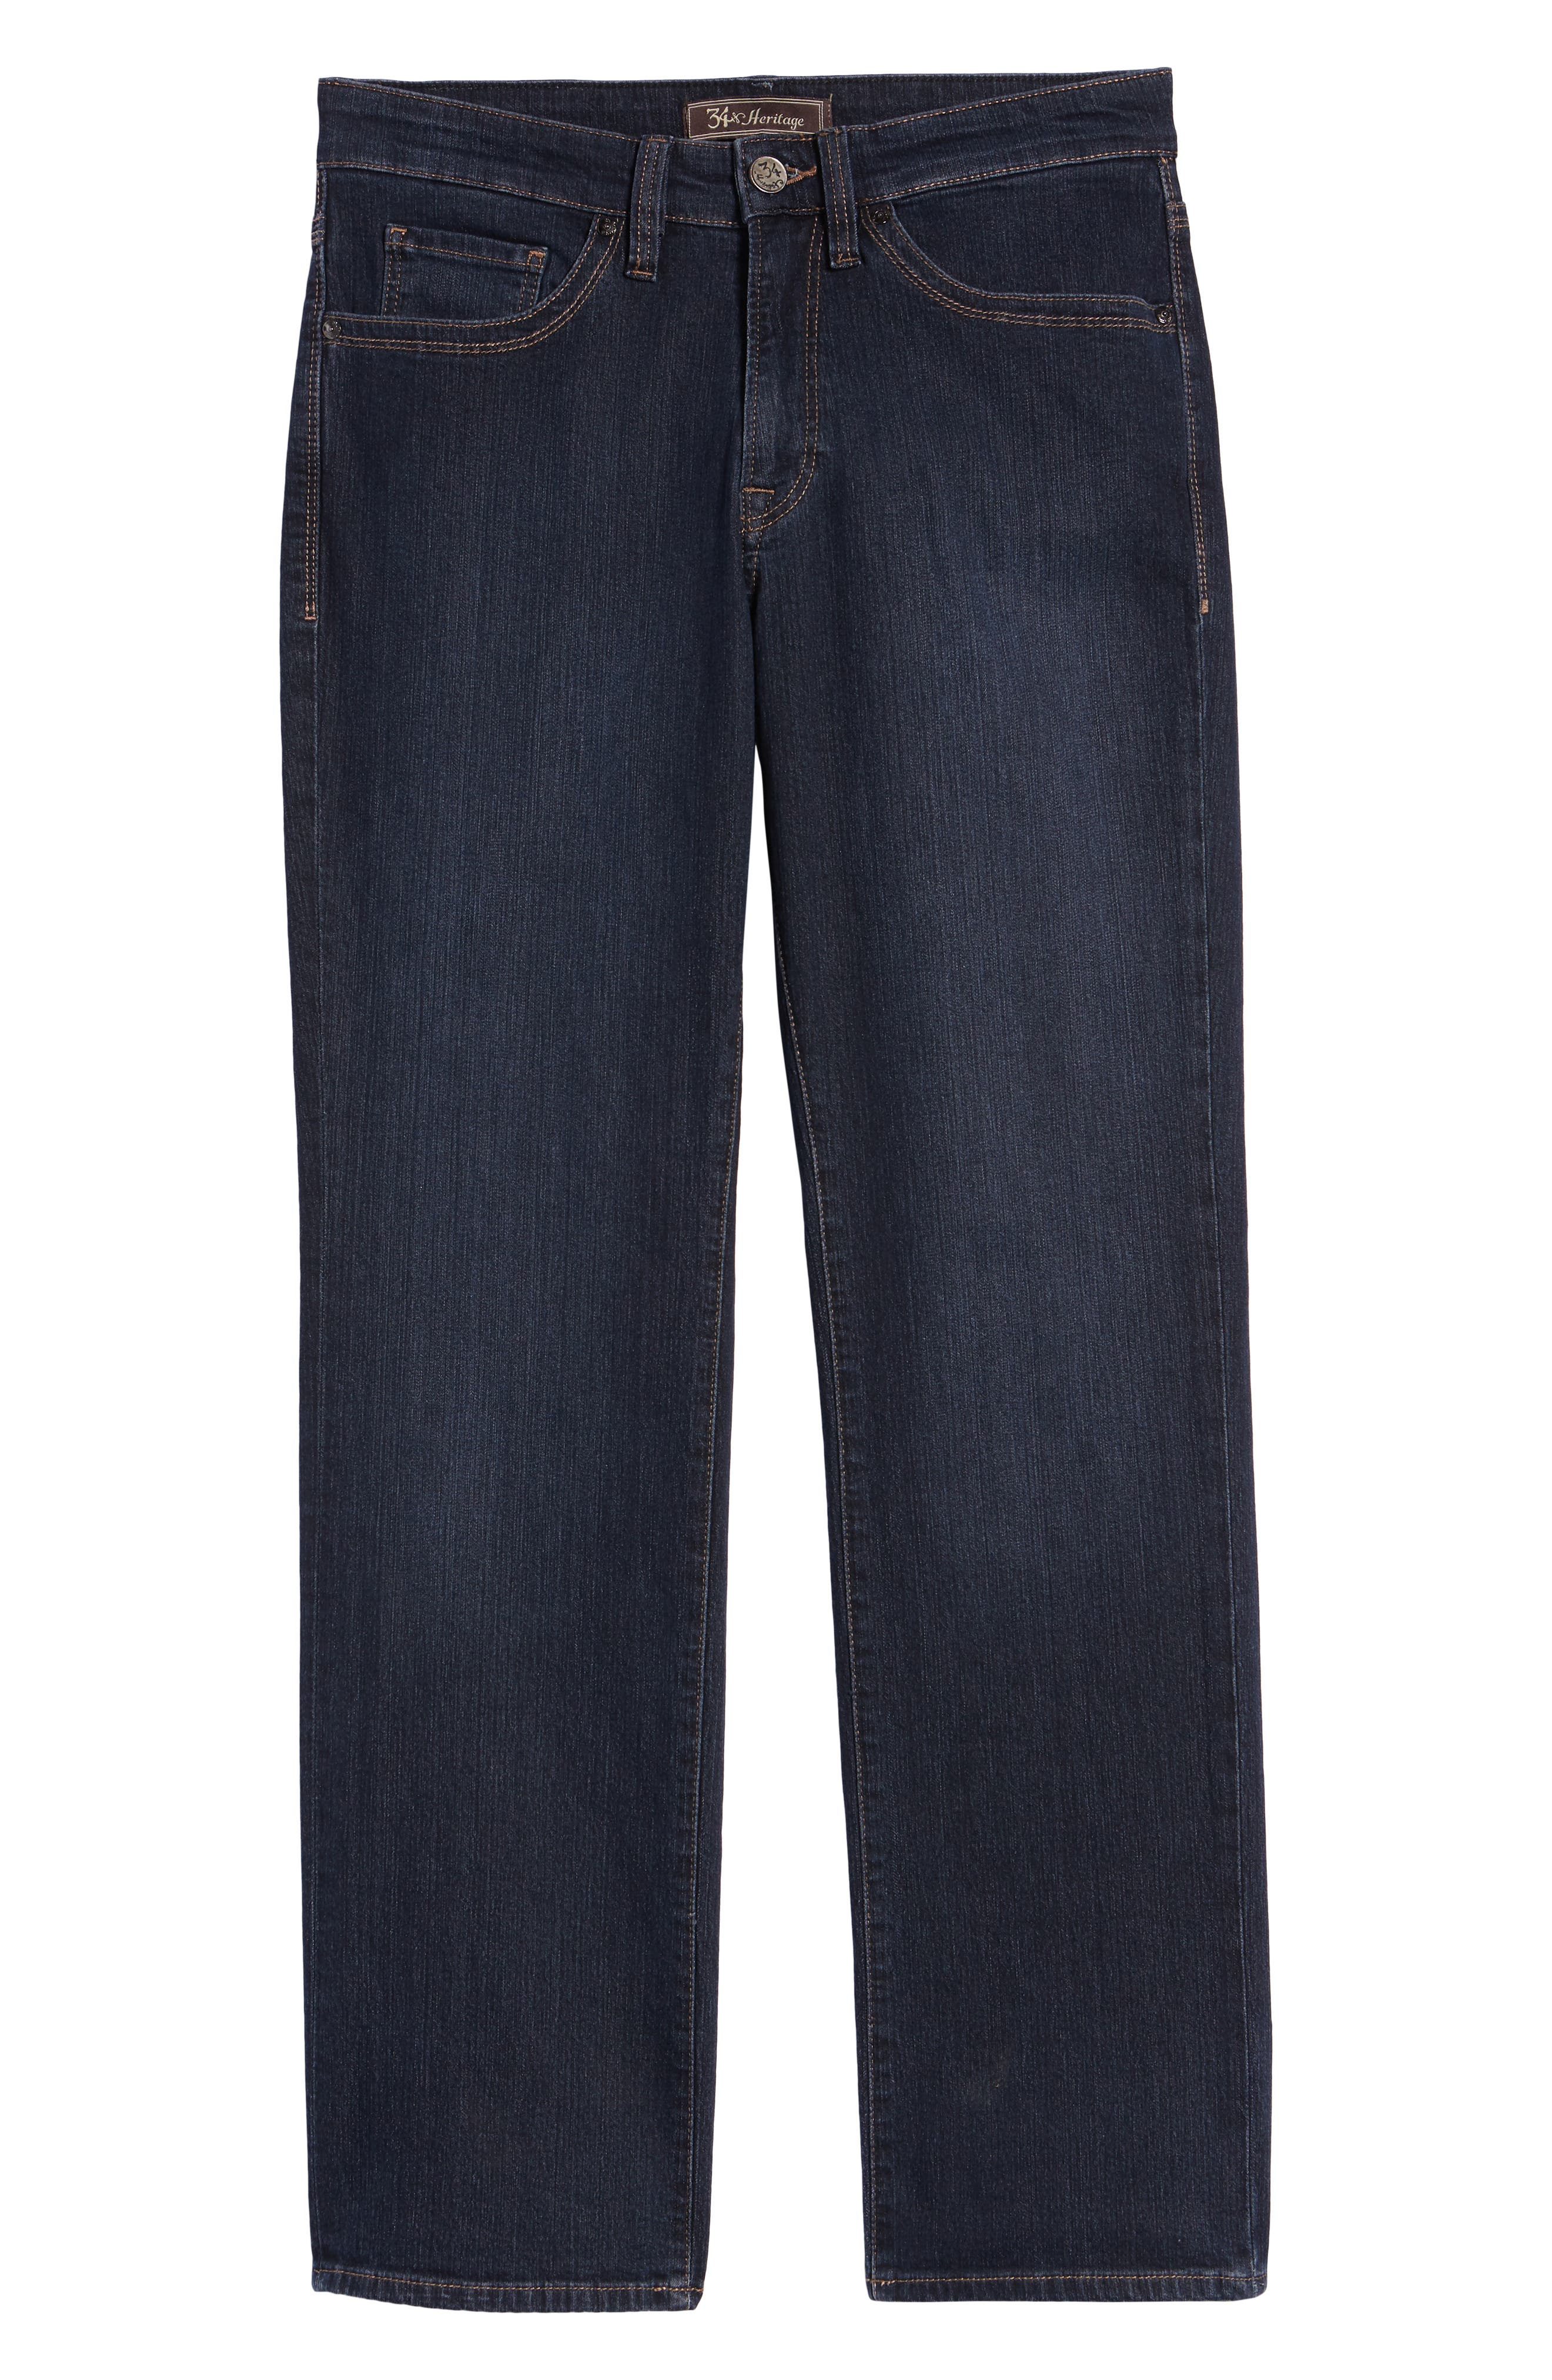 Charisma Relaxed Fit Jeans,                             Alternate thumbnail 2, color,                             DARK COMFORT